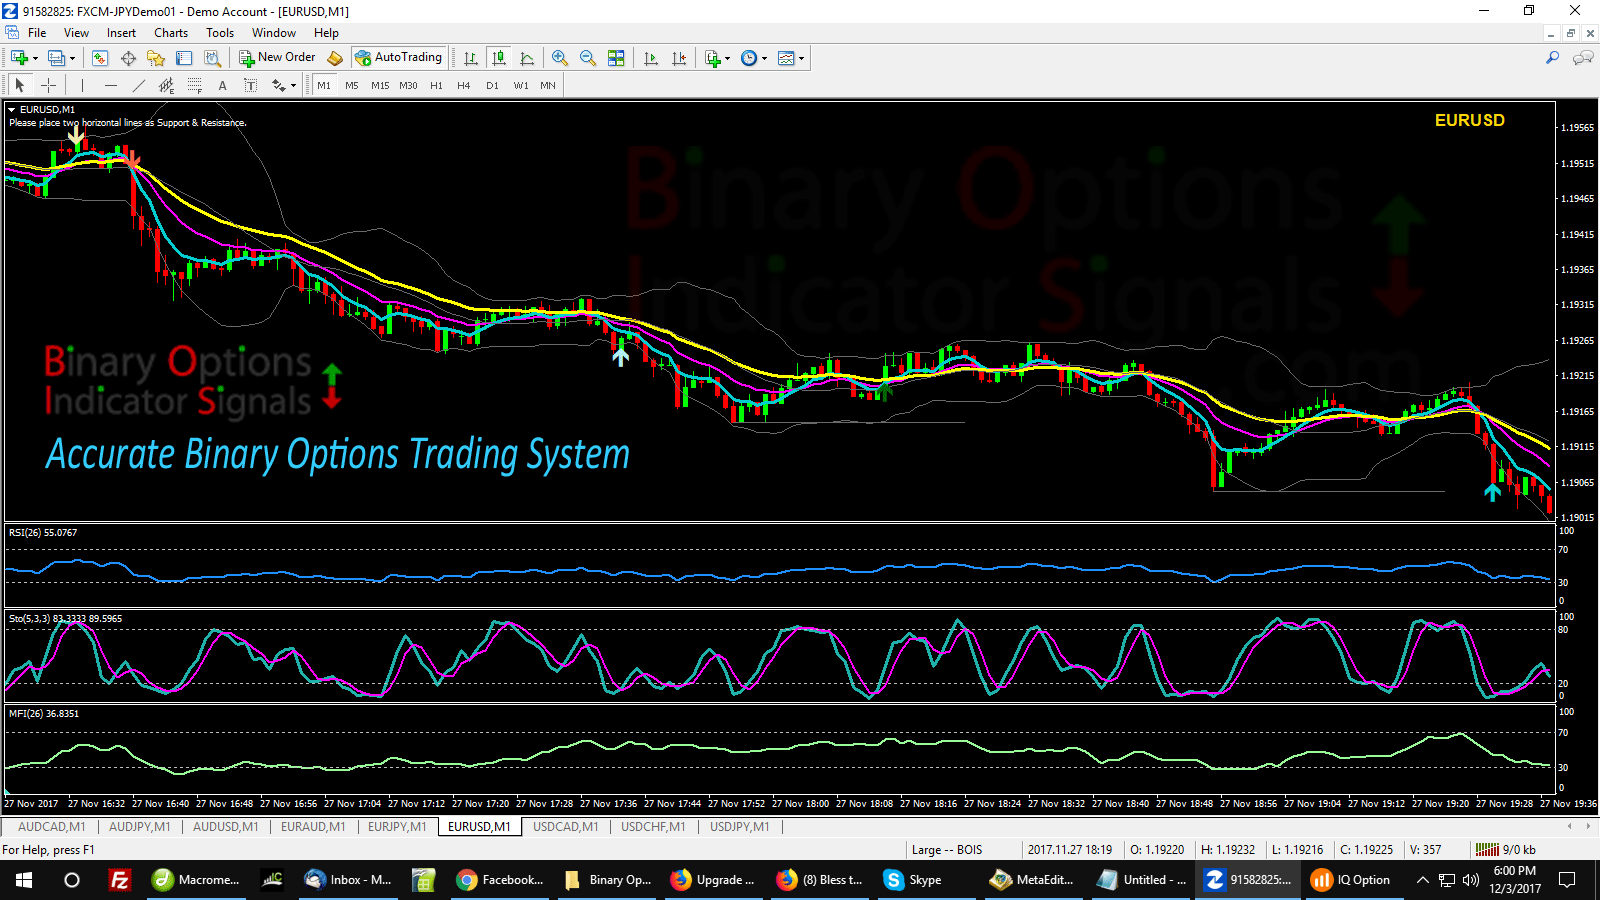 Binary options trading system that works